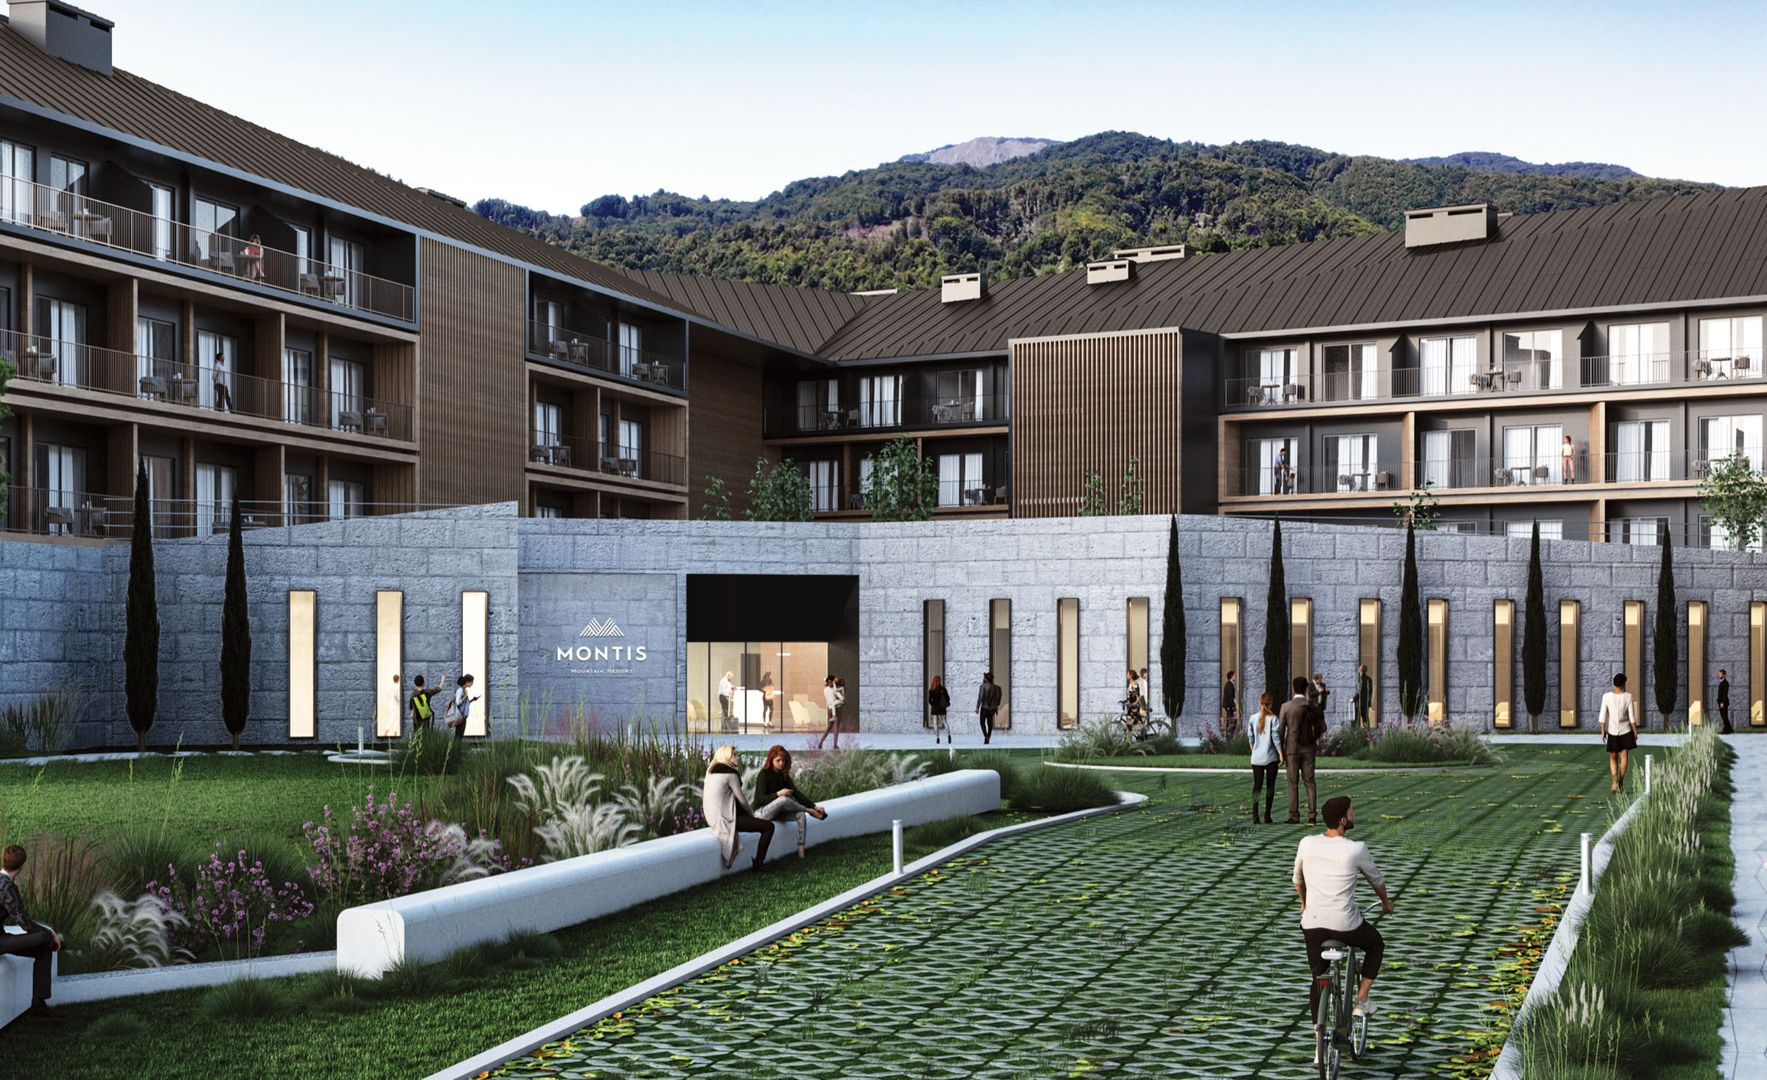 Montis mountain resort – Citizenship by investment